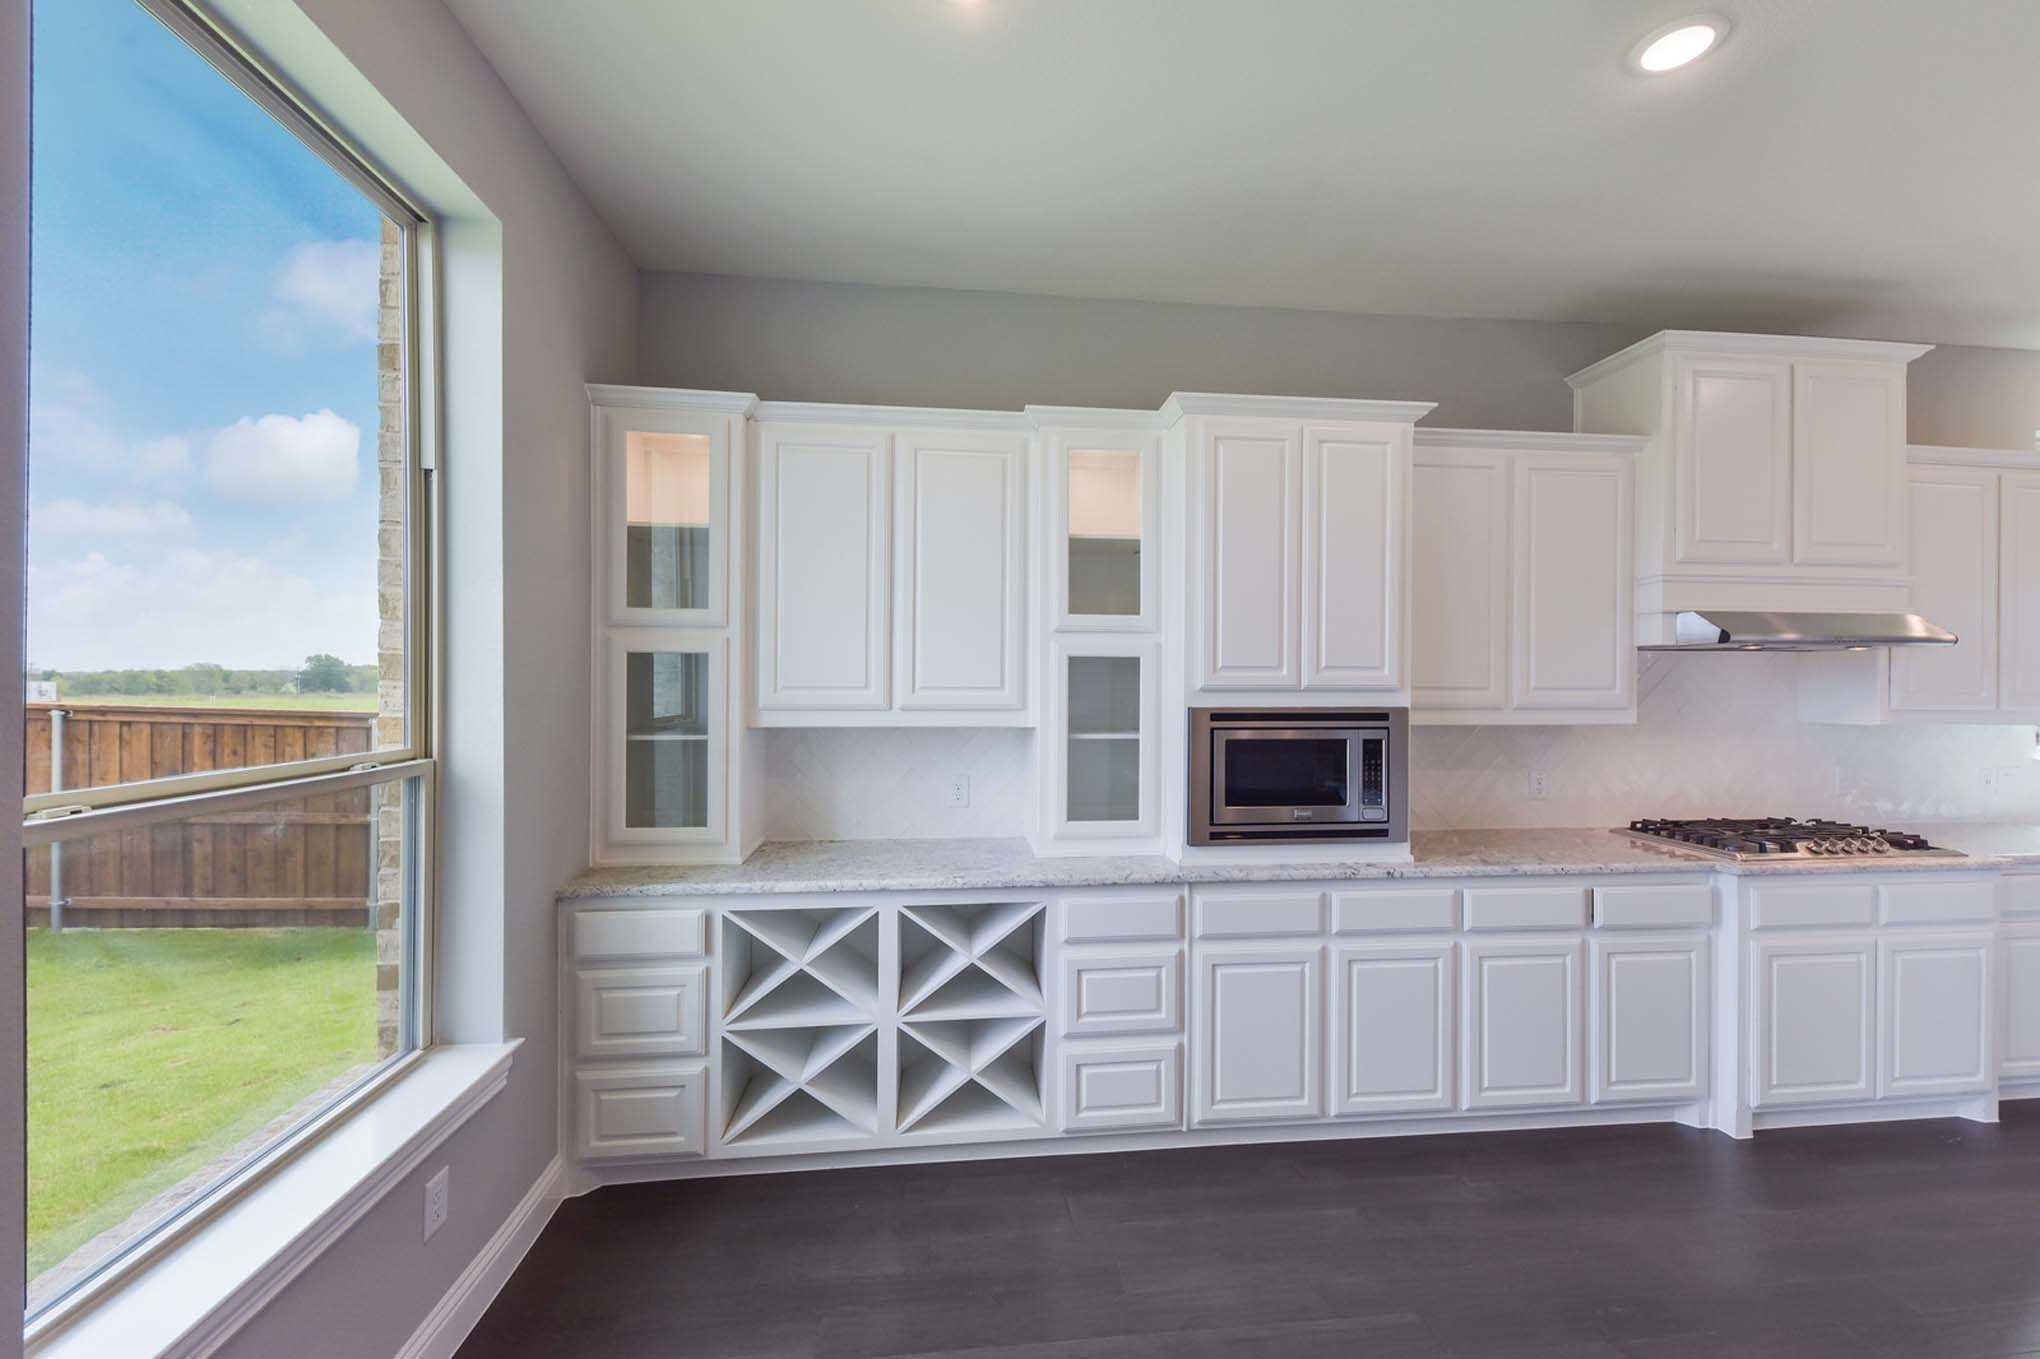 Kitchen featured in the Plan 277 By Highland Homes in Dallas, TX